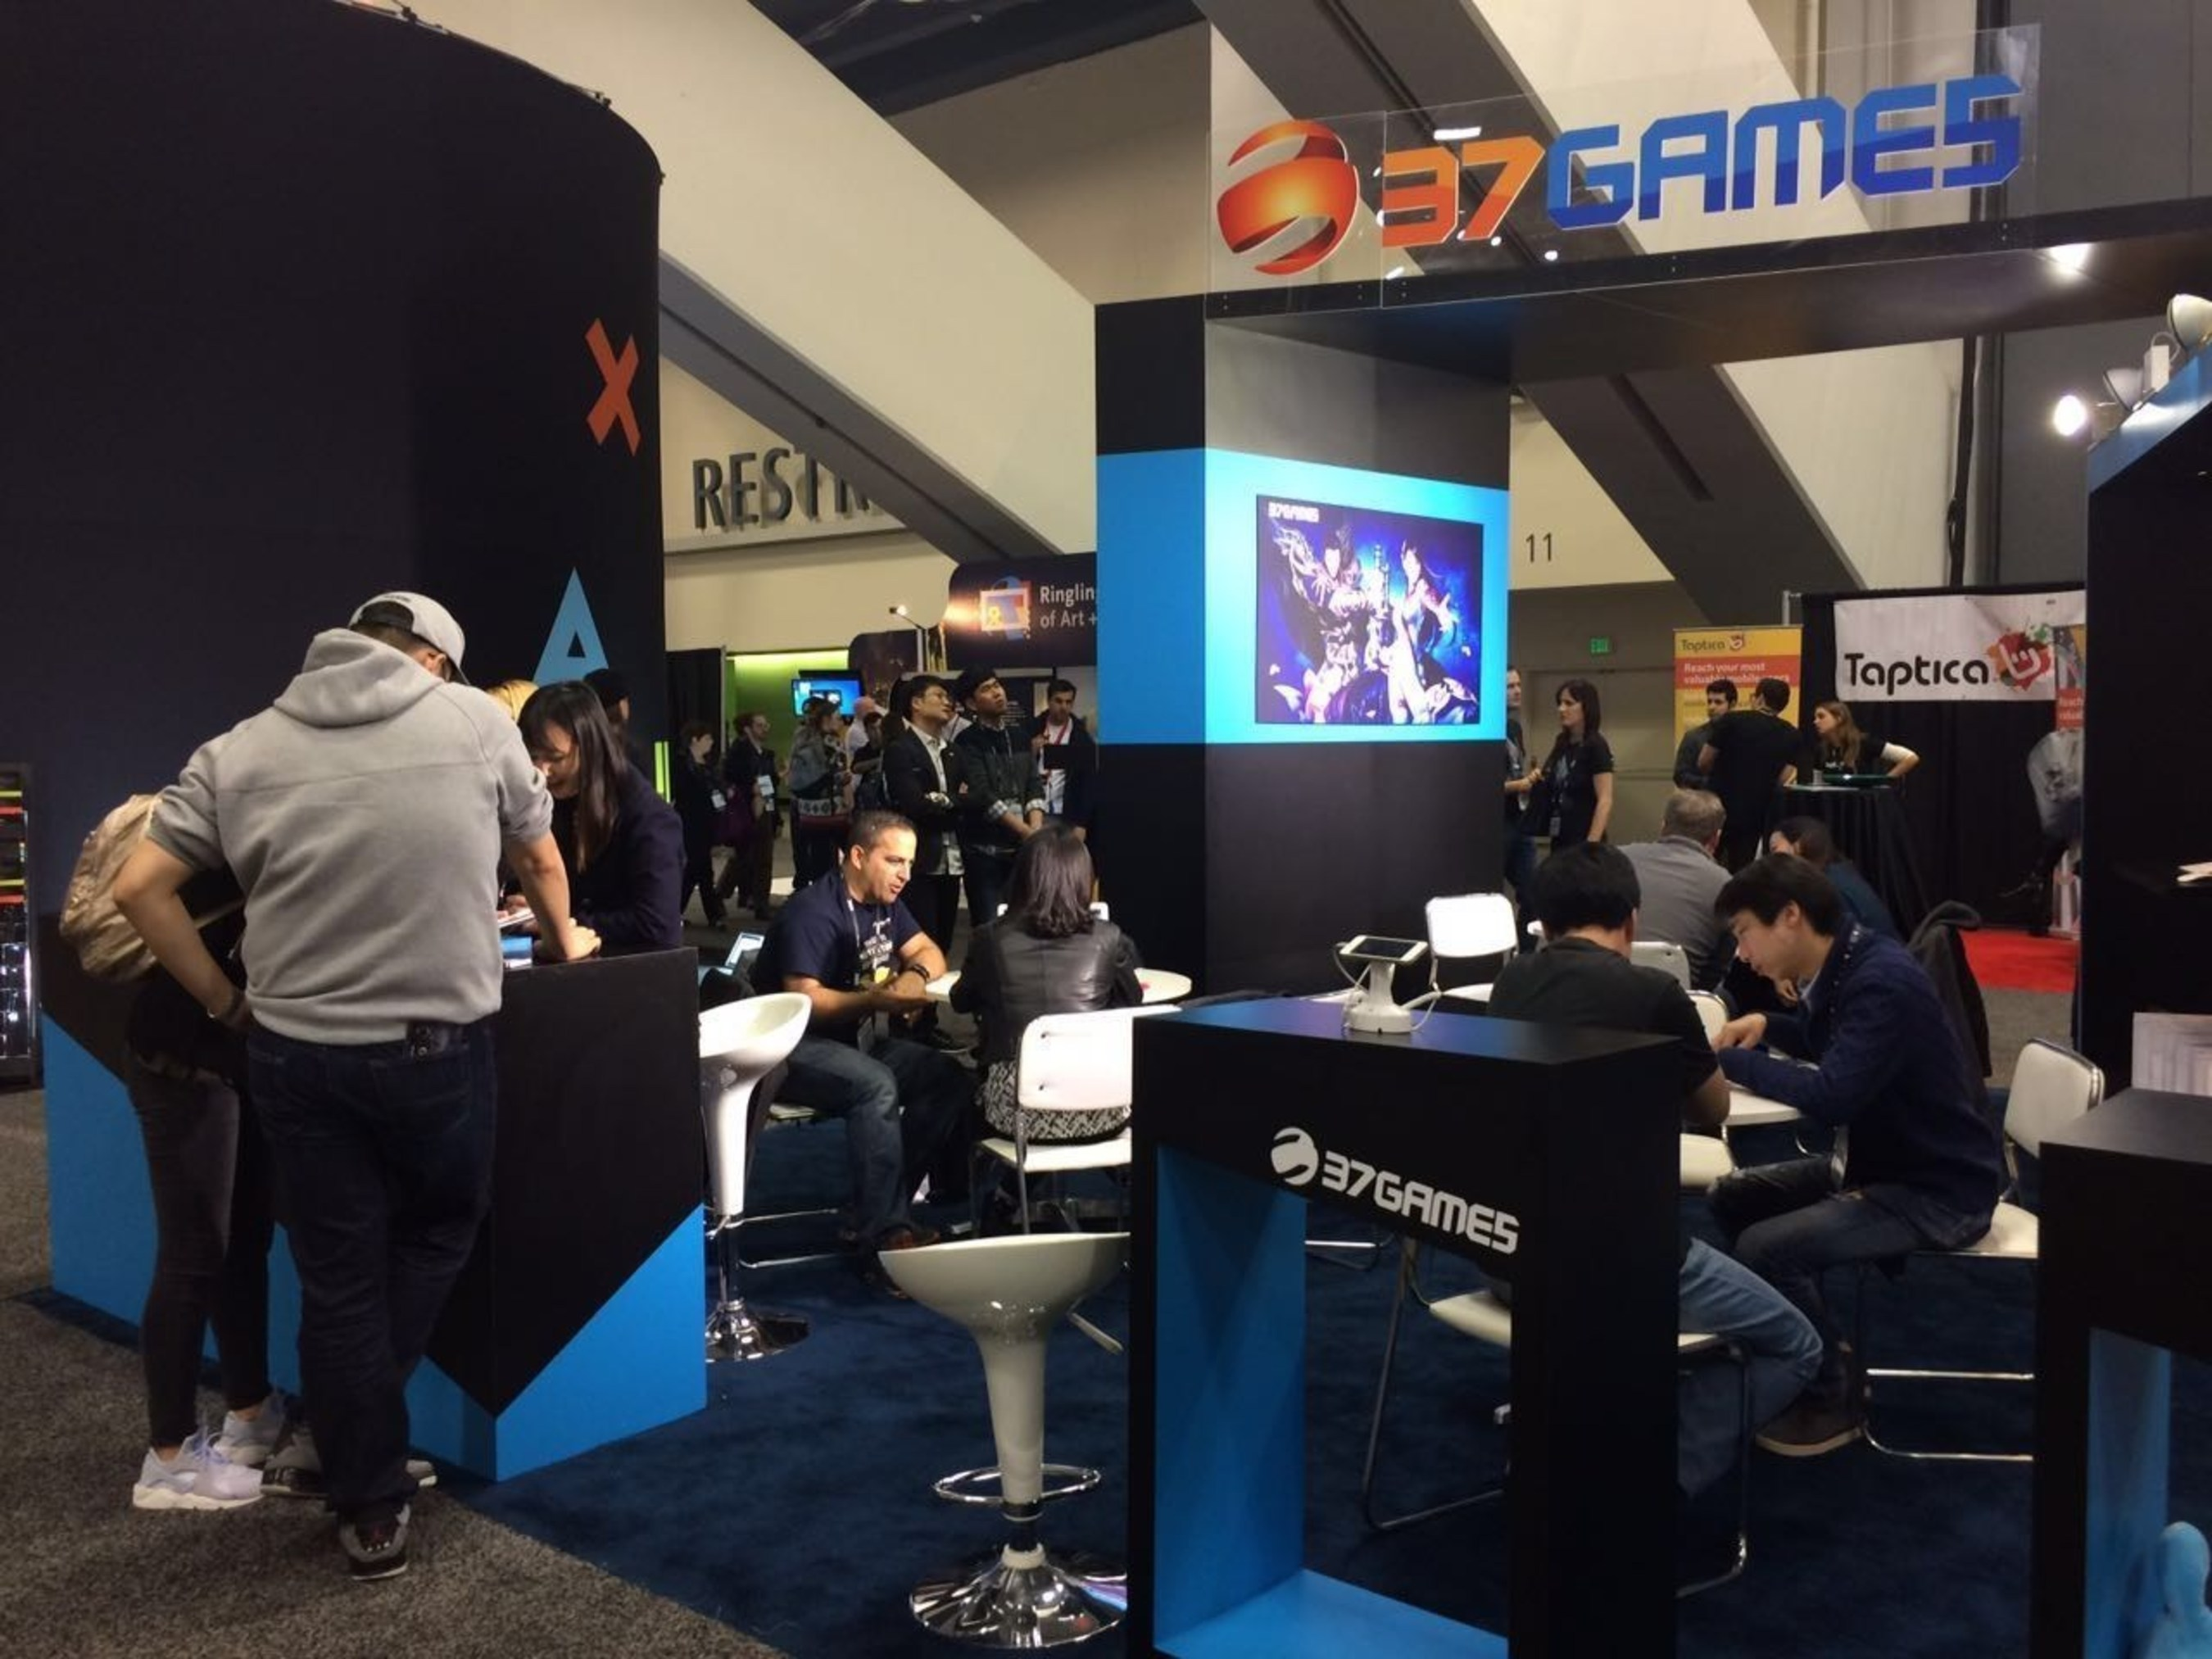 37Games' Makes First Appearance At GDC with Six Star Products